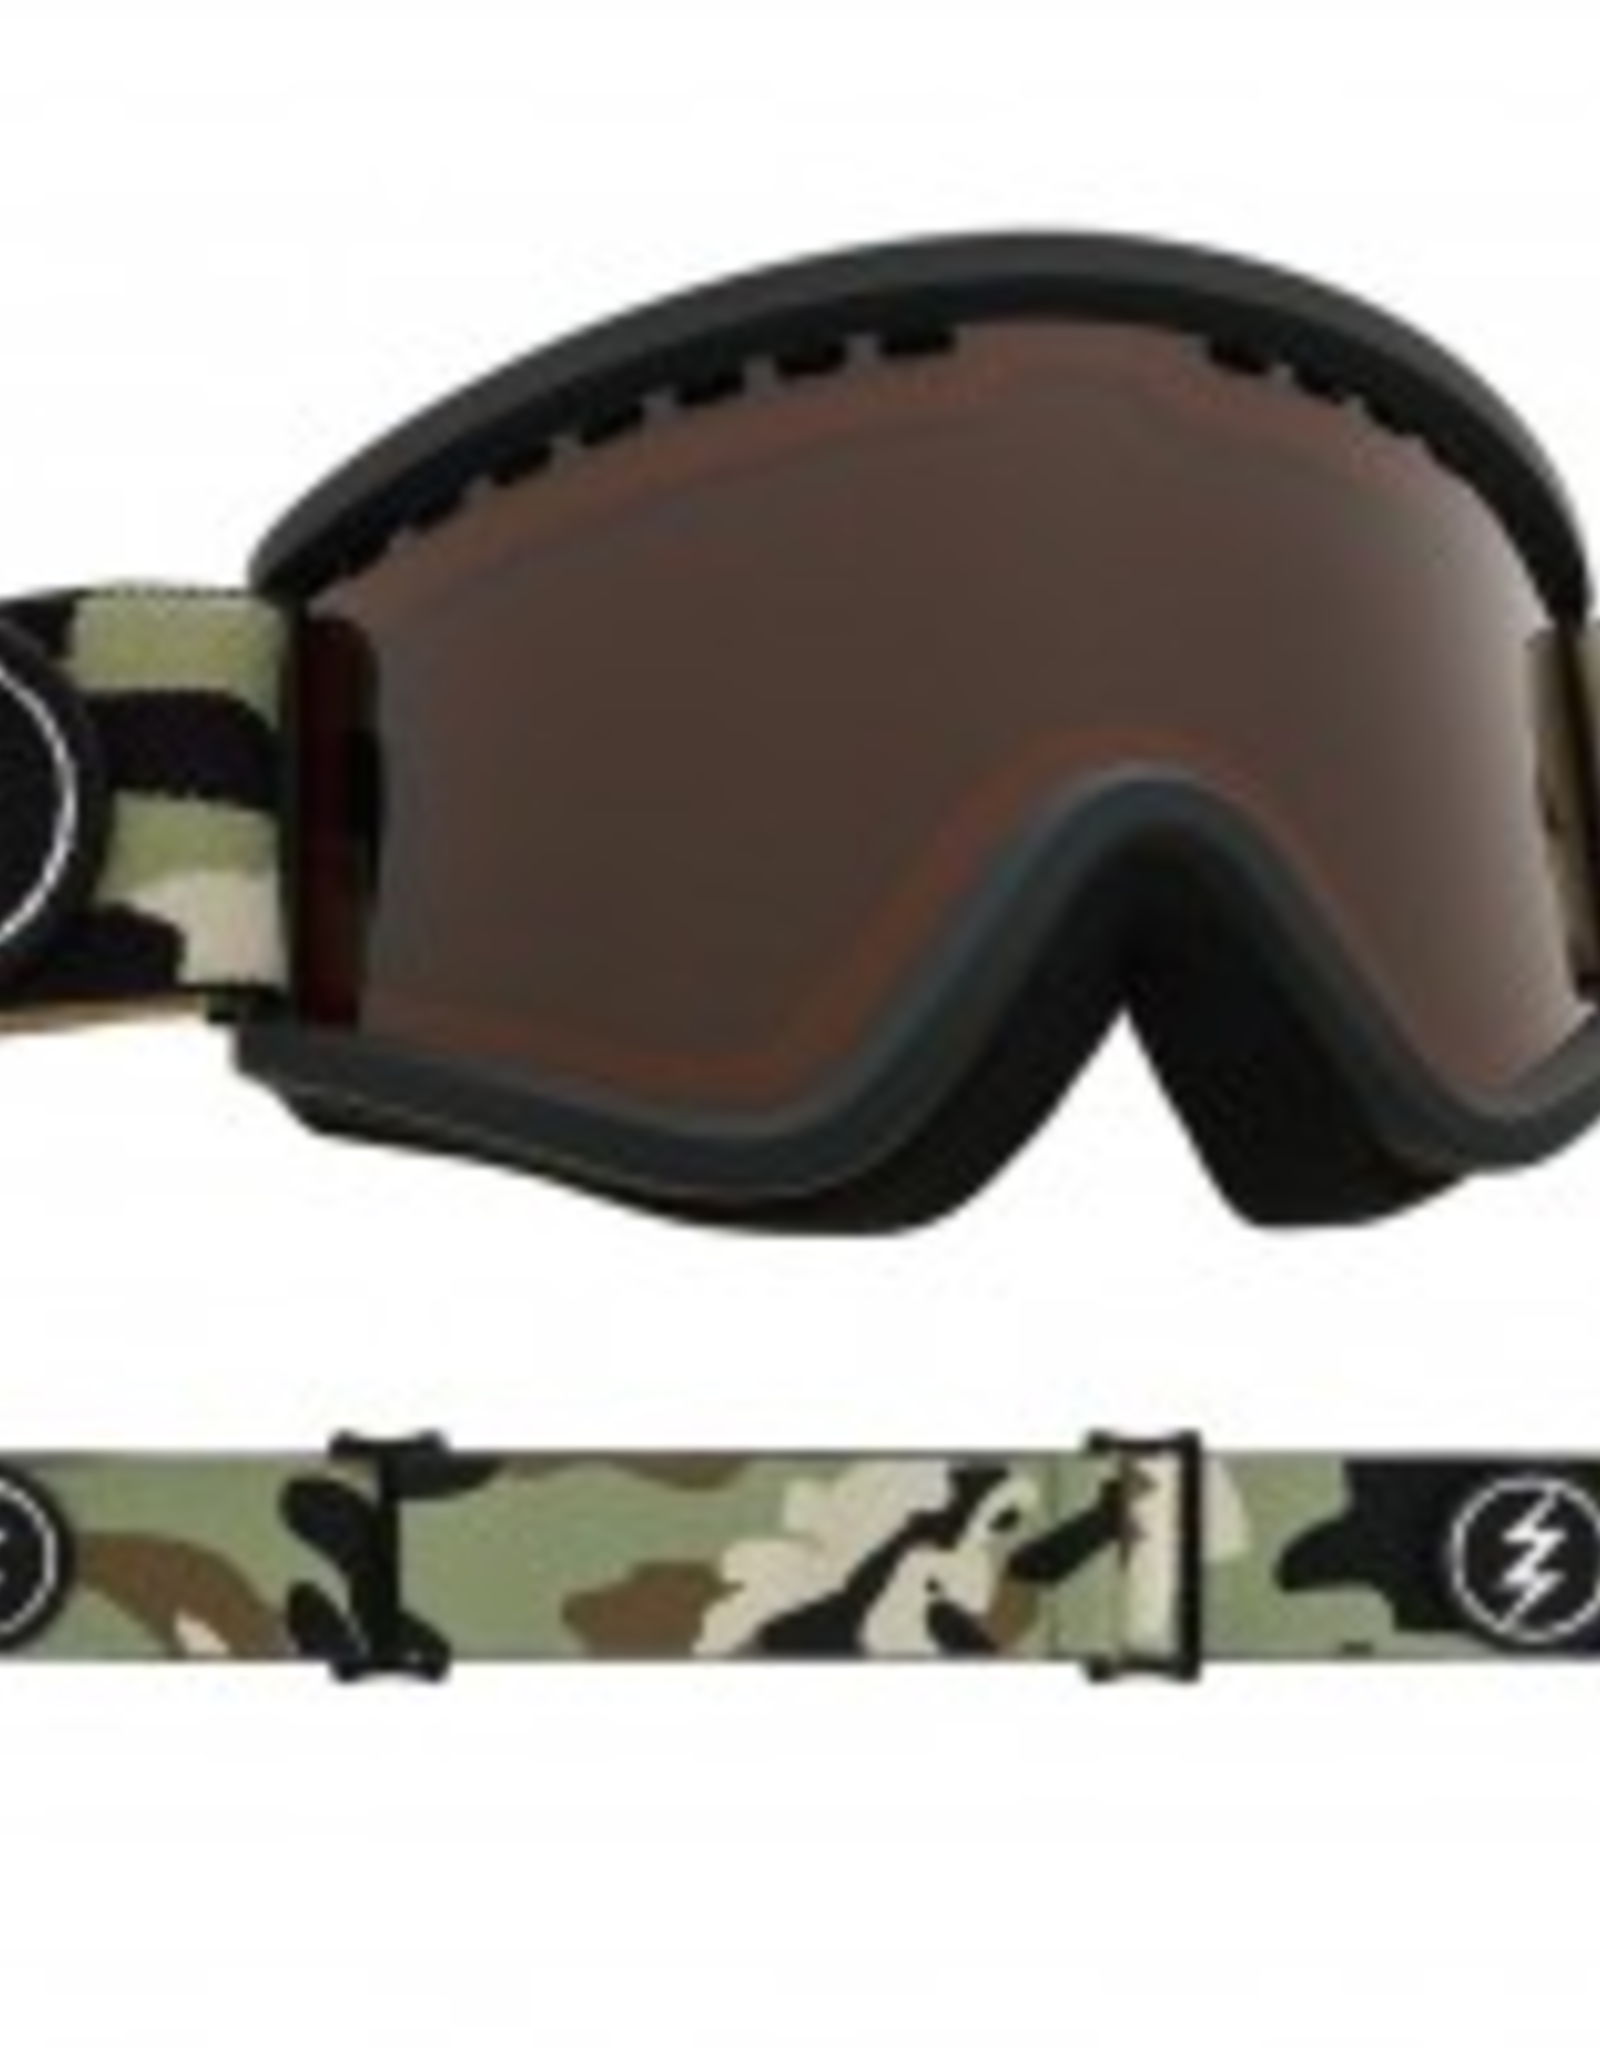 ELECTRIC ELECTRIC EGV.K YOUTH KIDS GOGGLES CAMO BROSE GREEN LENS